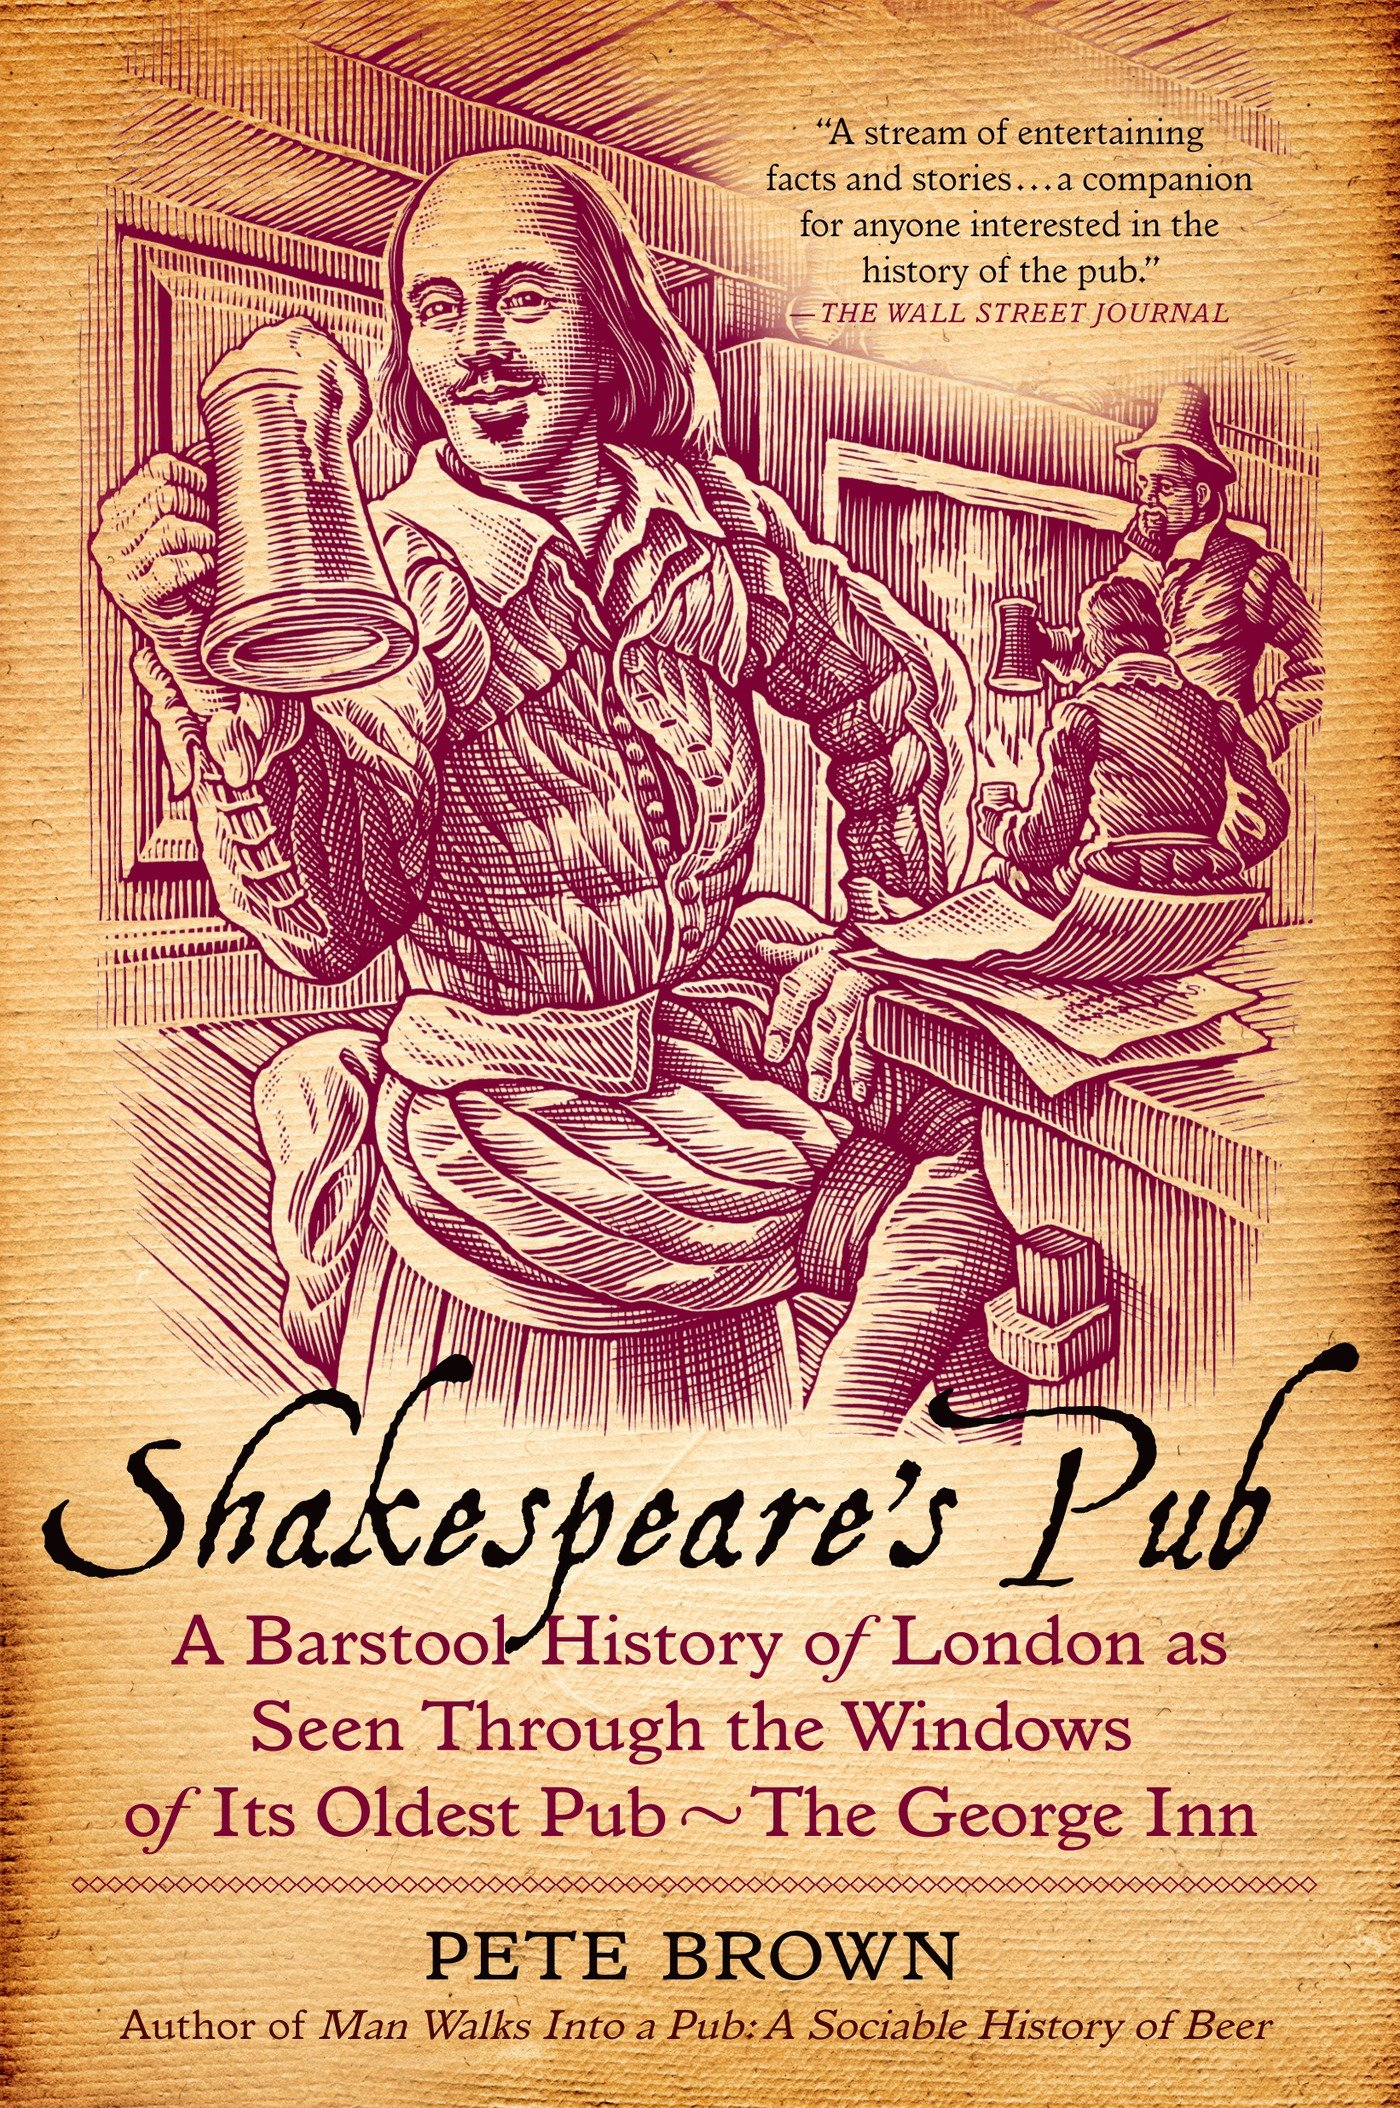 Shakespeare's Pub: A Barstool History of London as Seen Through the Windows of Its Oldest Pub - The George Inn by St. Martin's Griffin